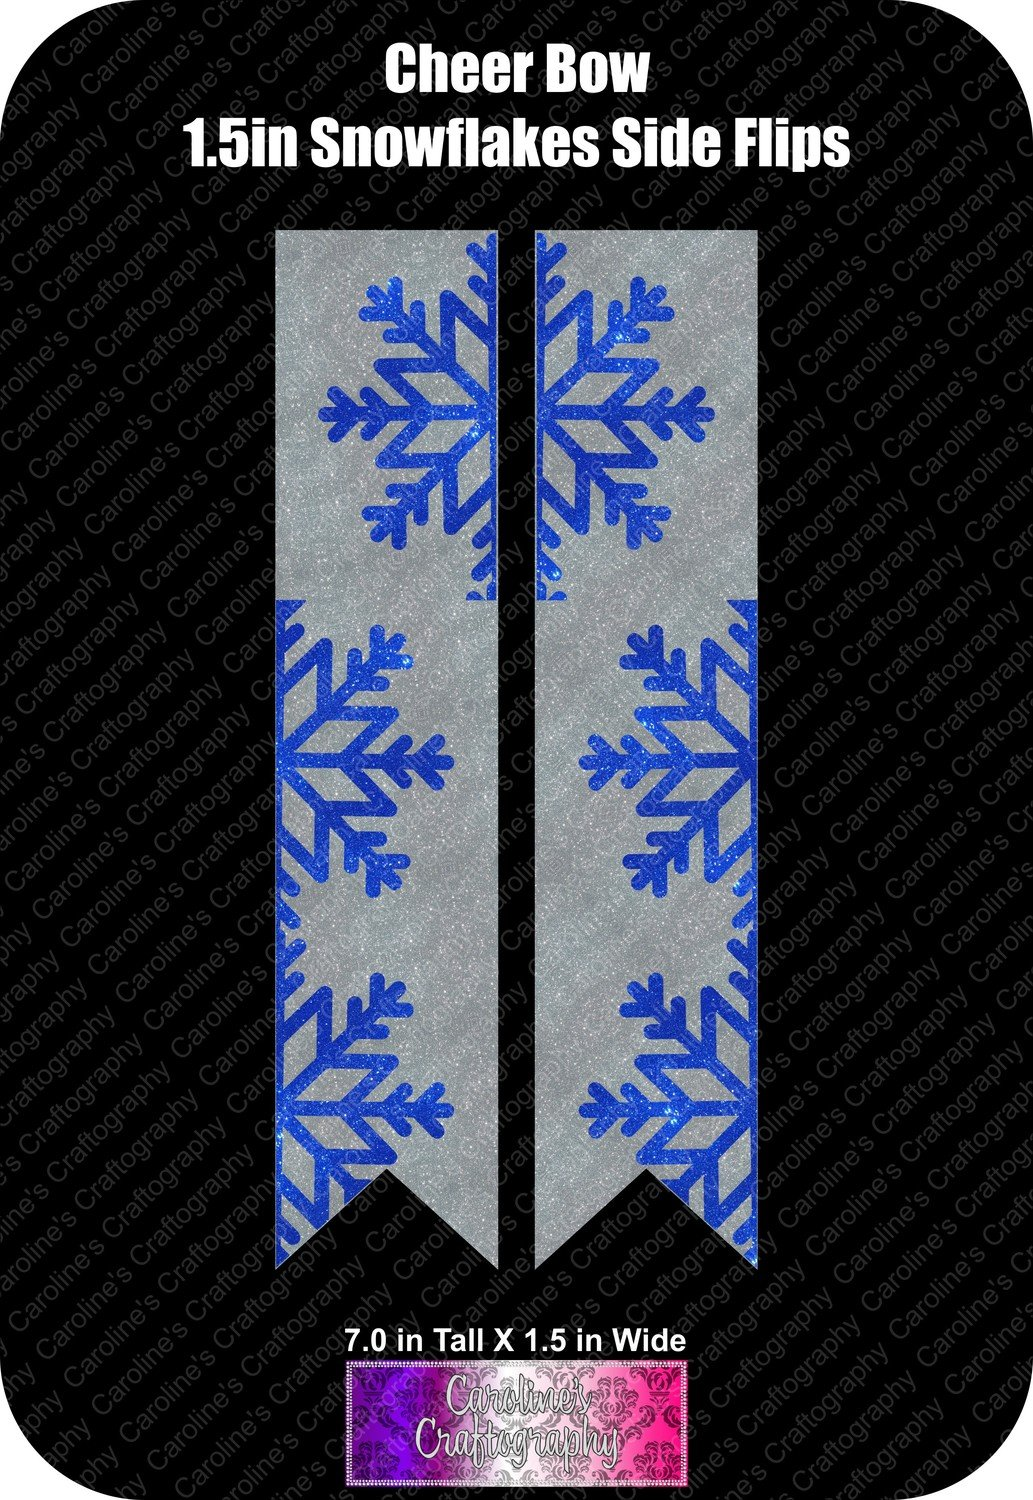 Snowflakes Side Flips 1.5in Cheer Bow Vinyl